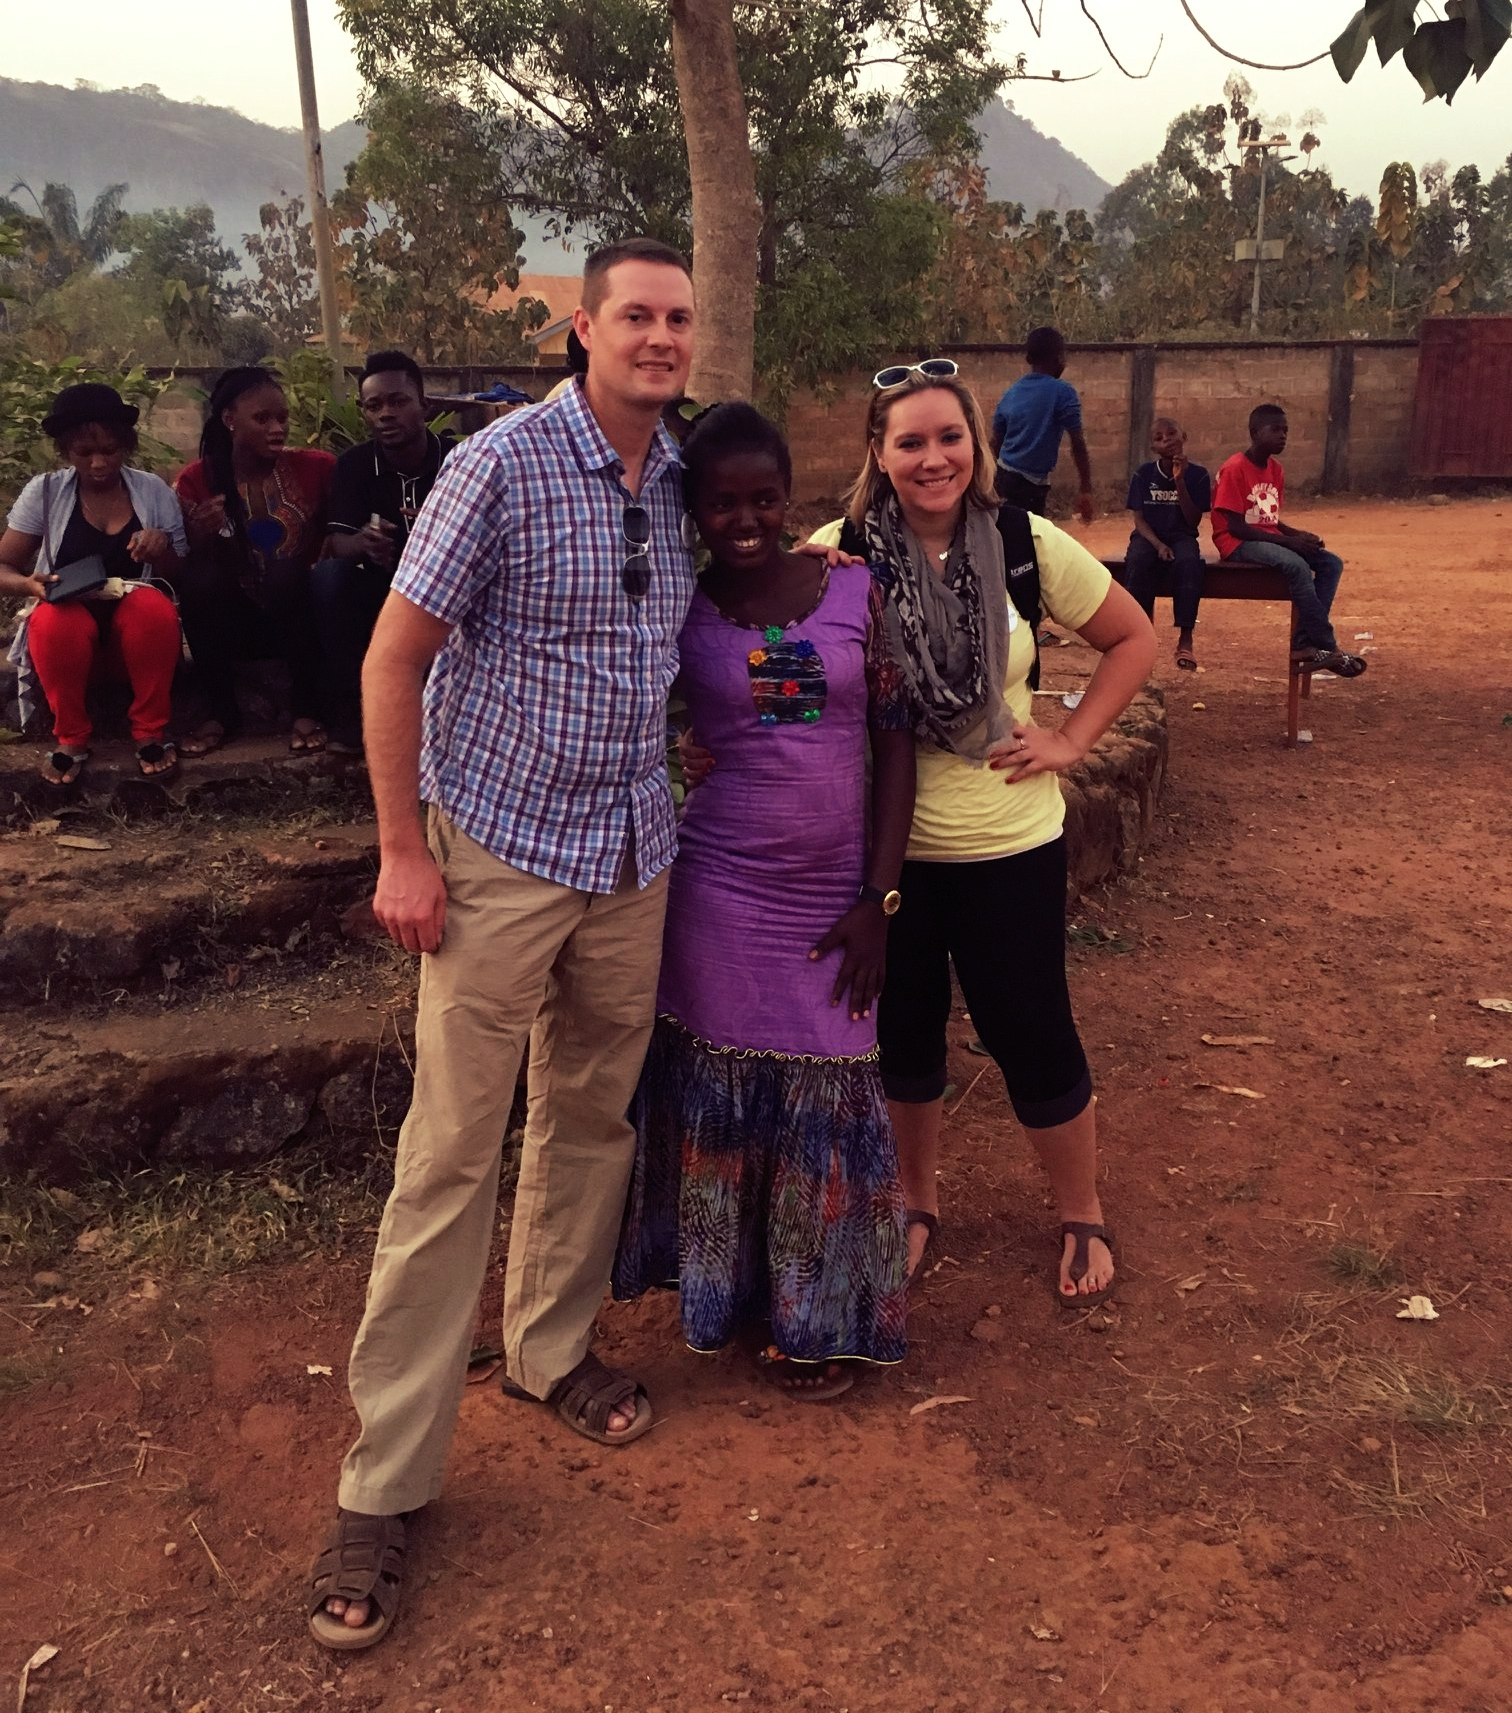 From left to right: Strides for Africa founder, Chris Jimeson; future Koinadugu College student, Mariama; and Feeding Mouths, Filling Minds volunteer, Amy Hegg.